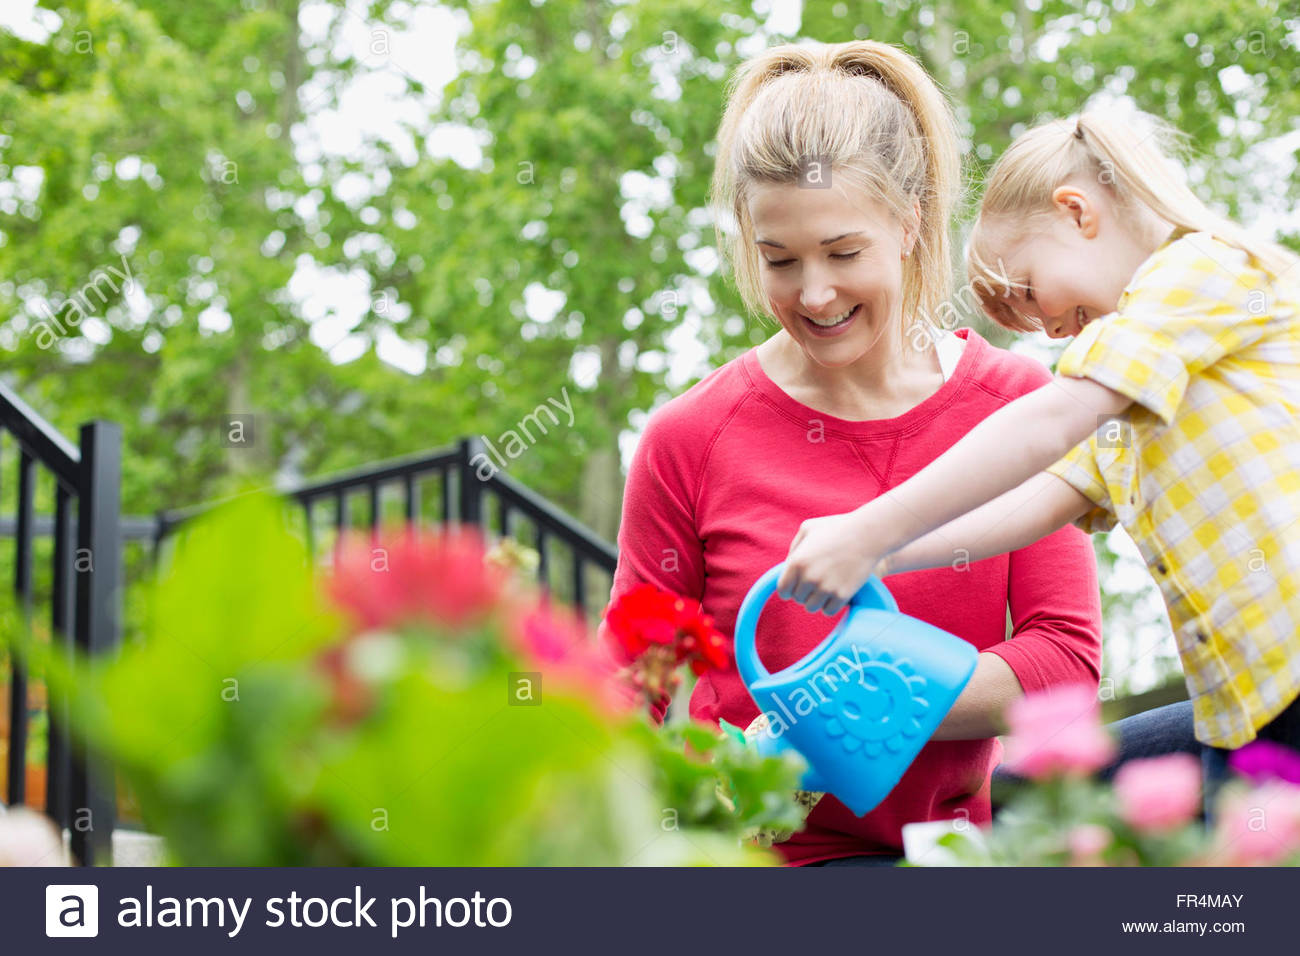 mom and 5 year old daughter watering flowers - Stock Image